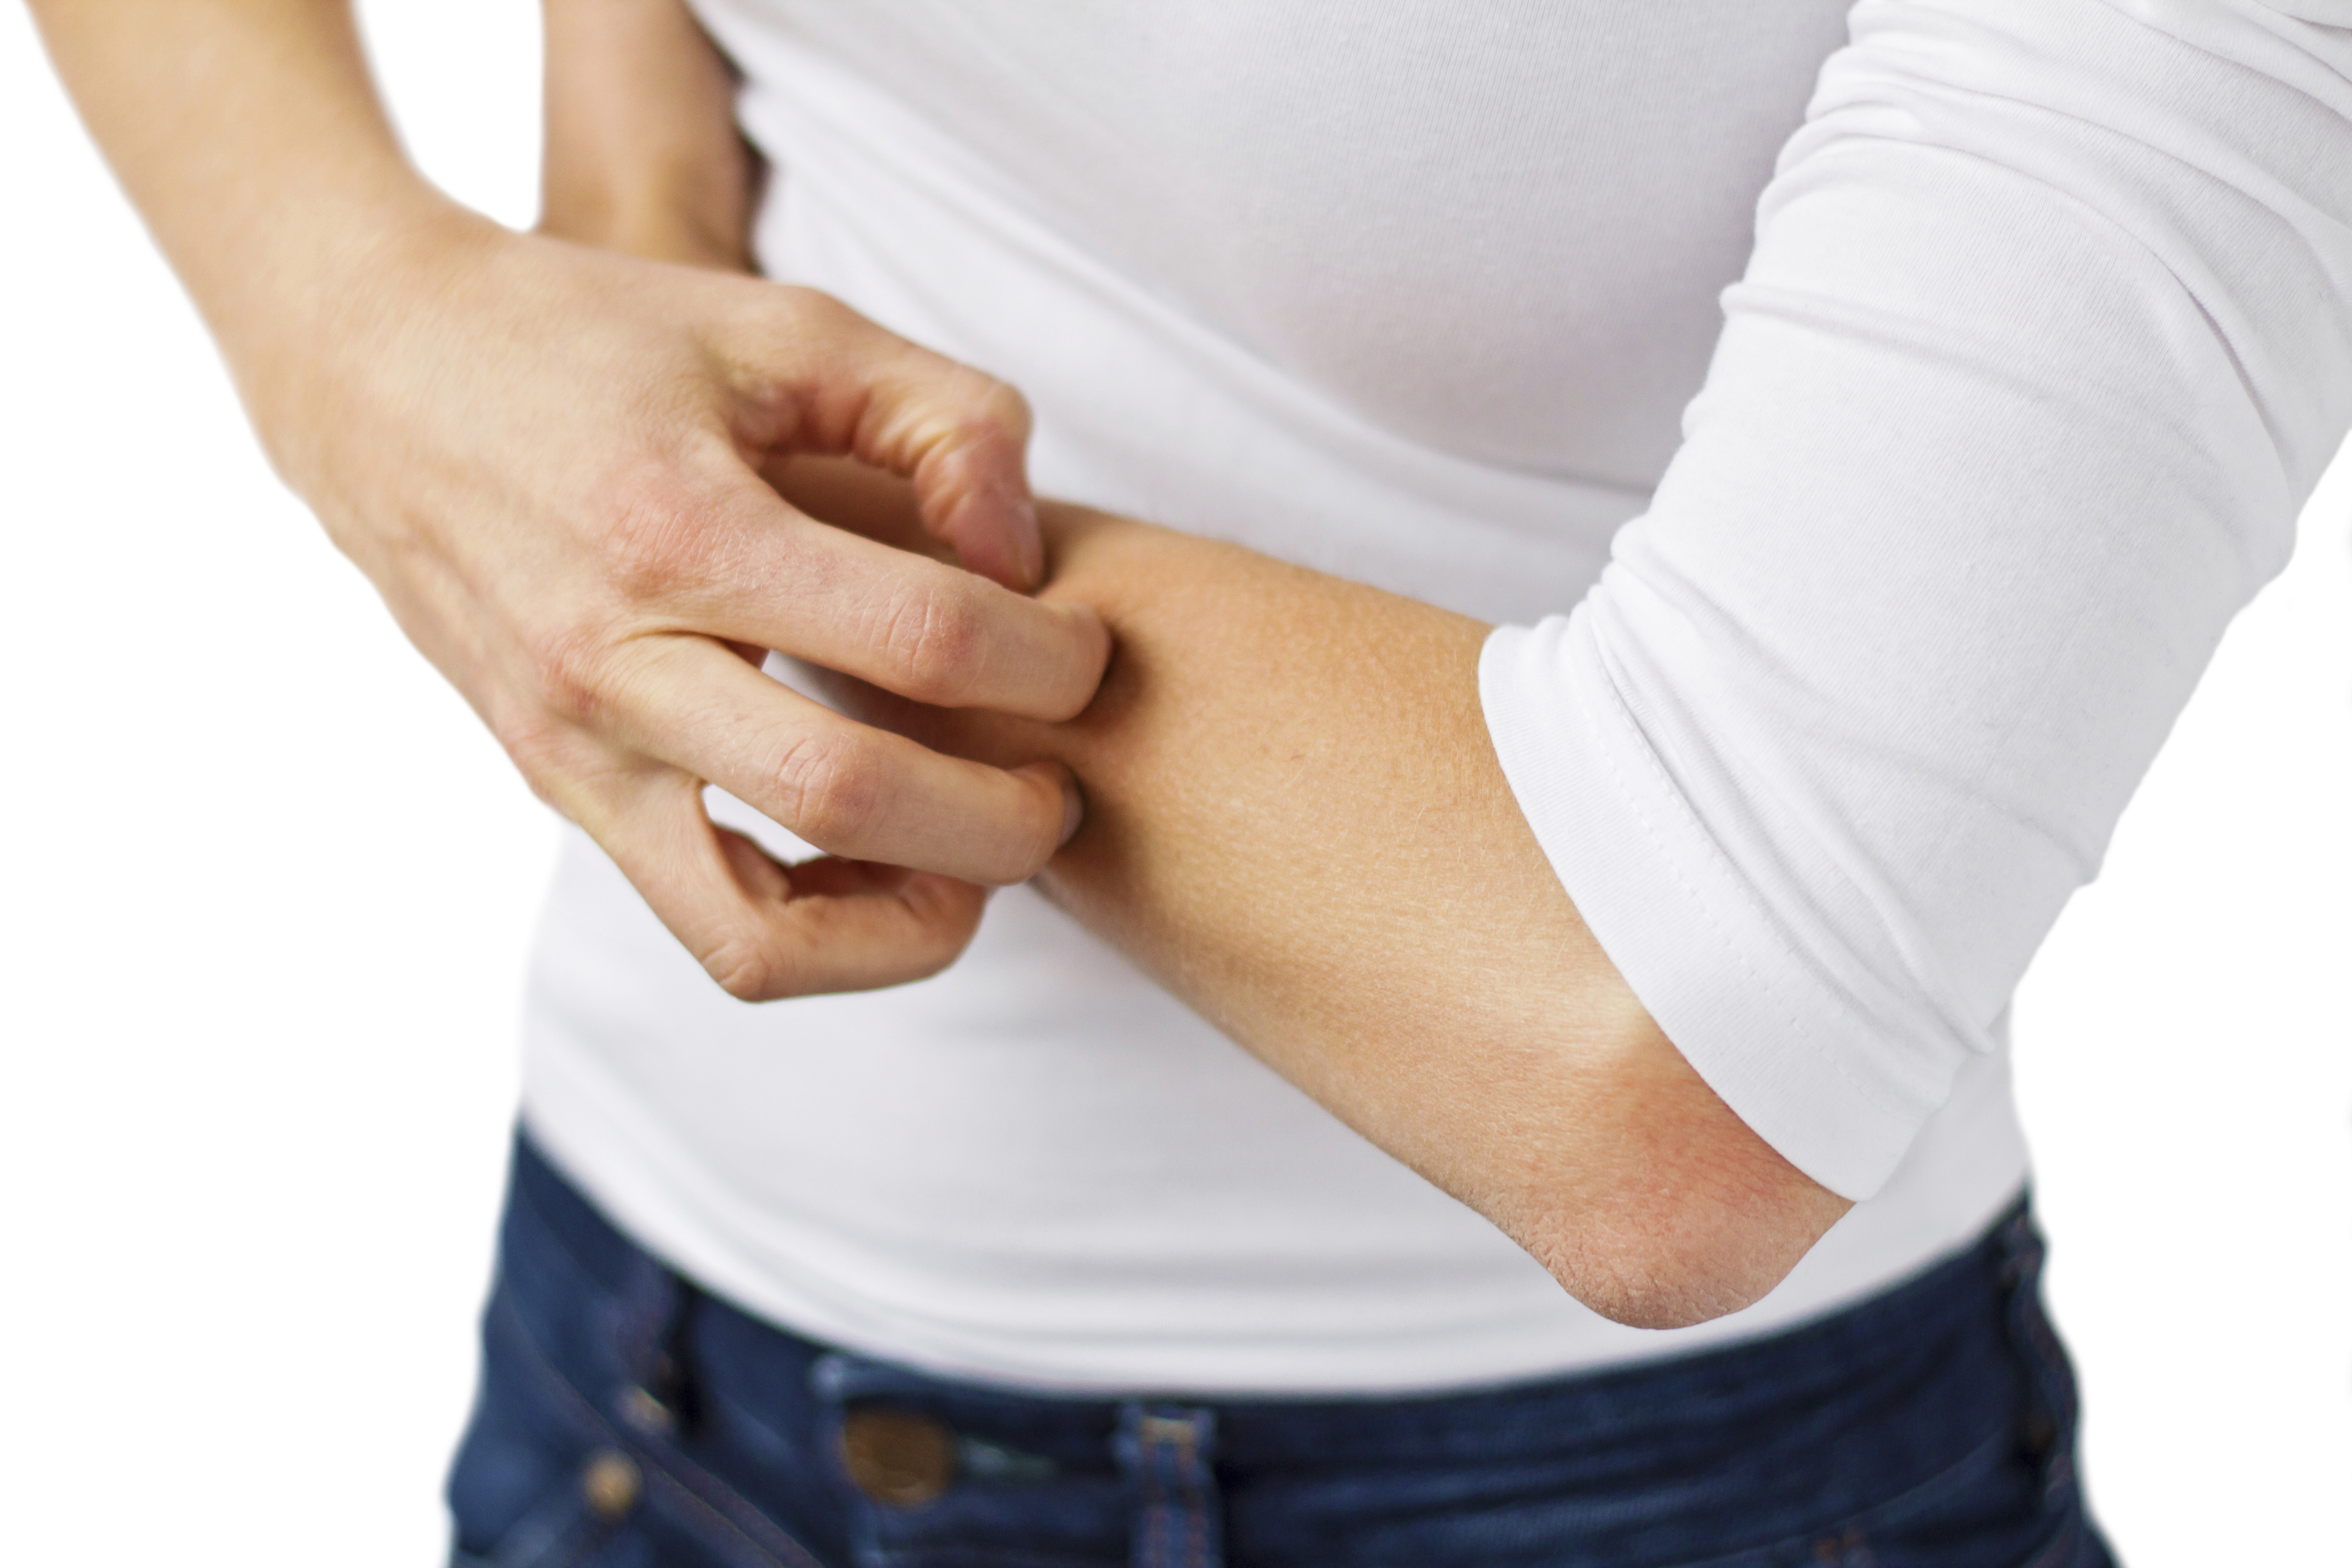 Doctor shares what to look for with shingles